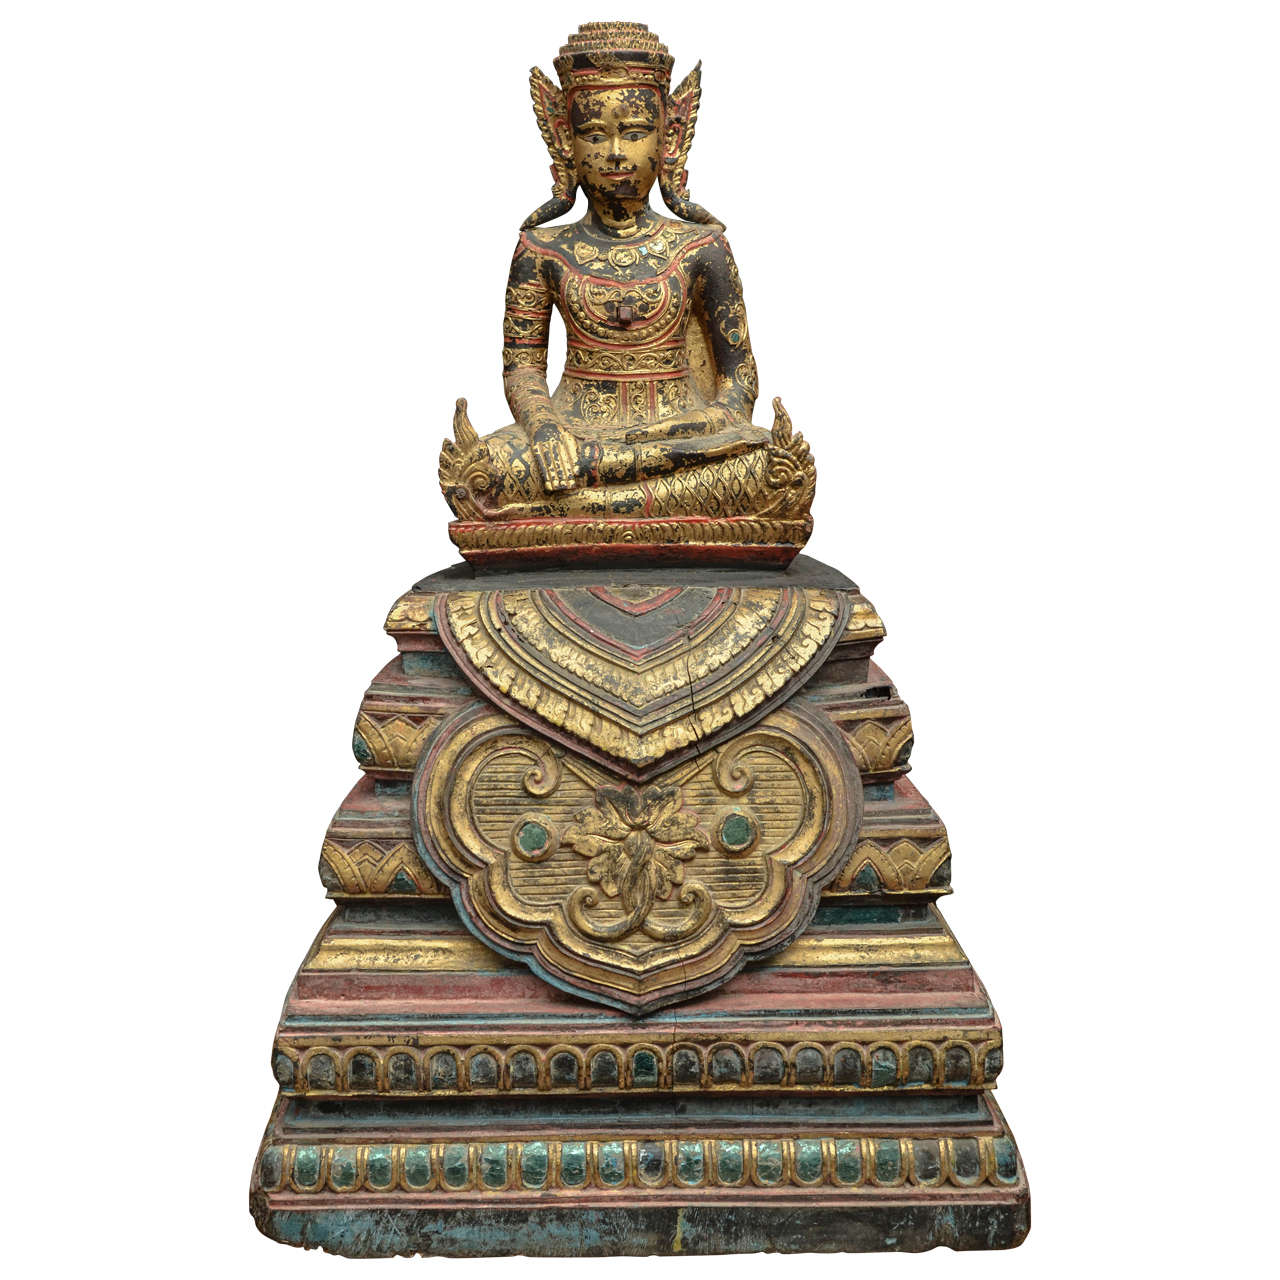 19th Century Carved and Parcel-Gilt Cambodian Seated Buddha in Royal Dress For Sale